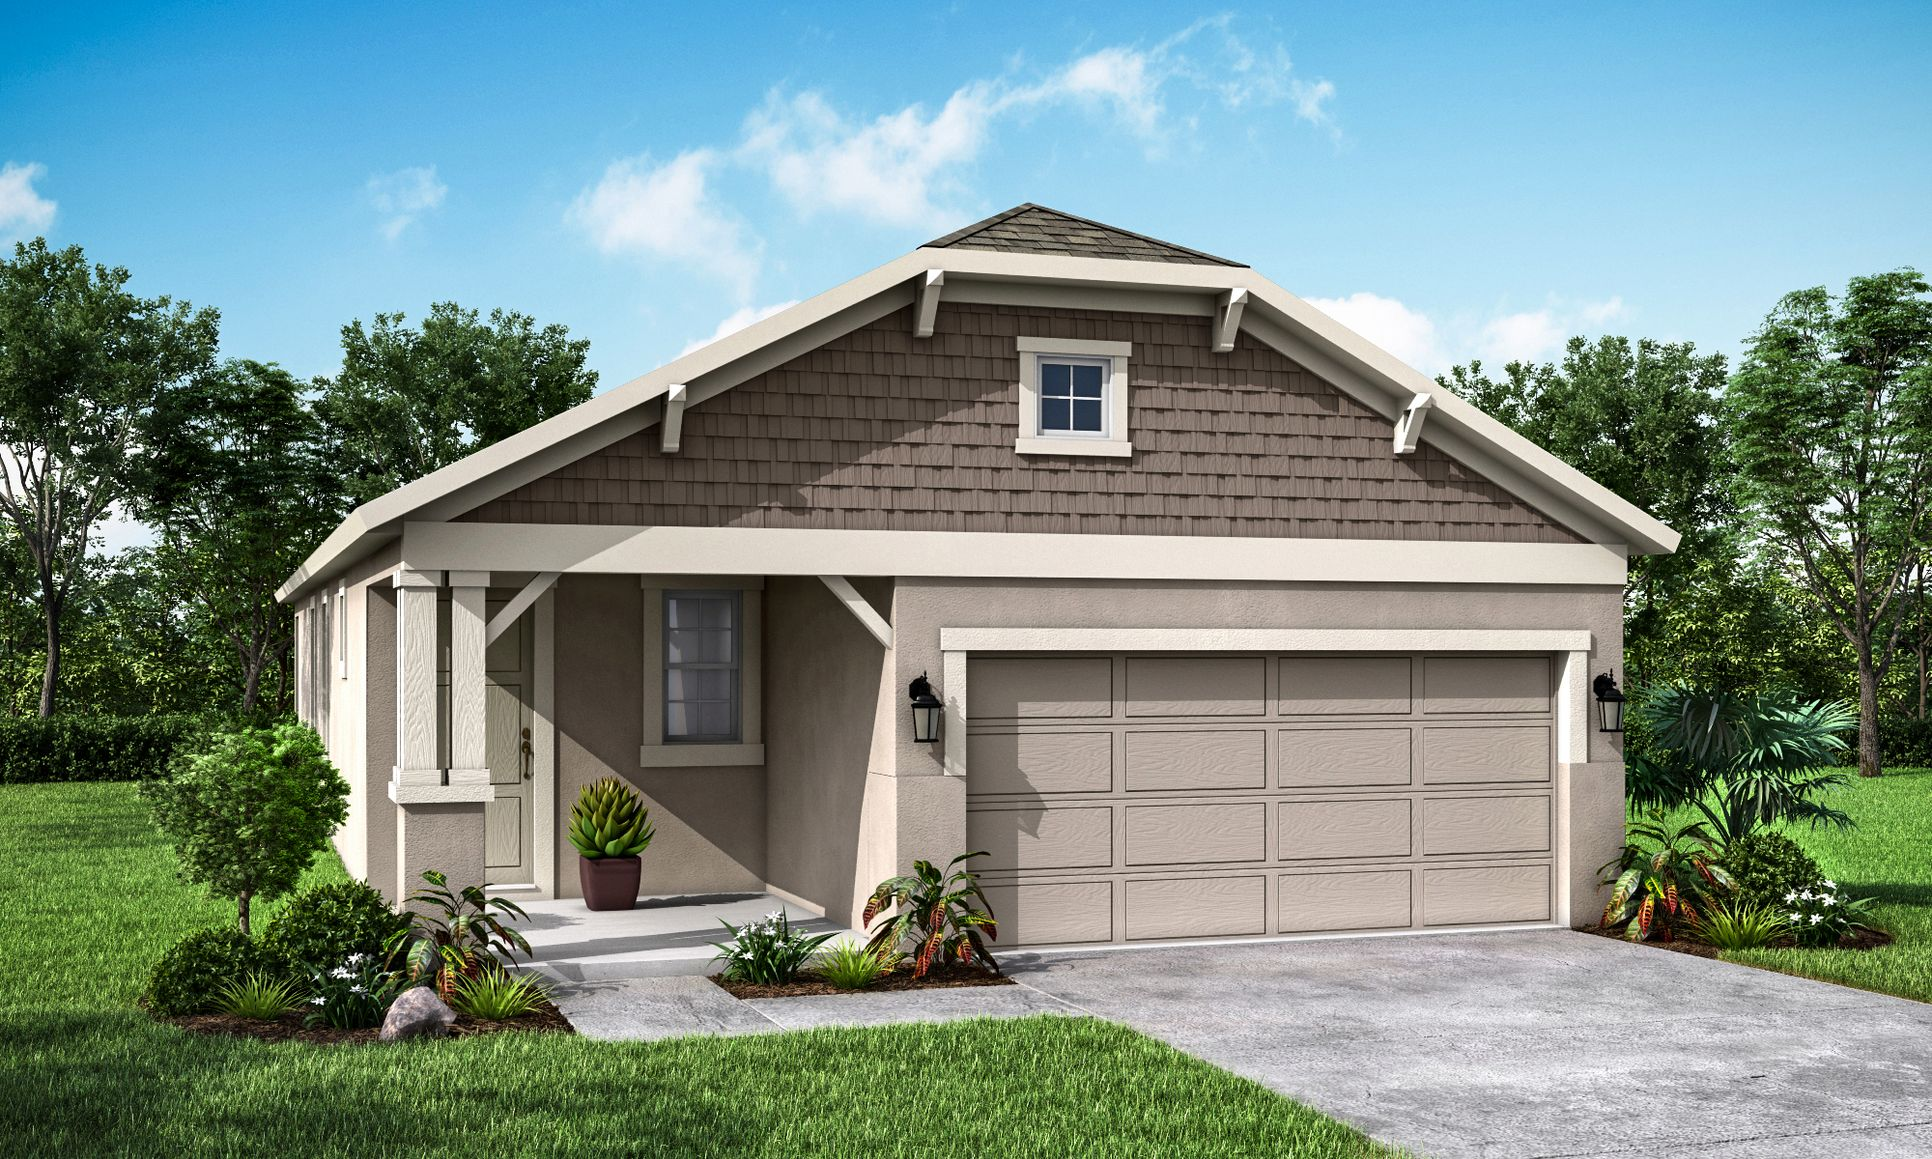 """Flora English Country Elevation """"A"""" -William Ryan Homes:Flora English Country- Elevation """"A"""""""